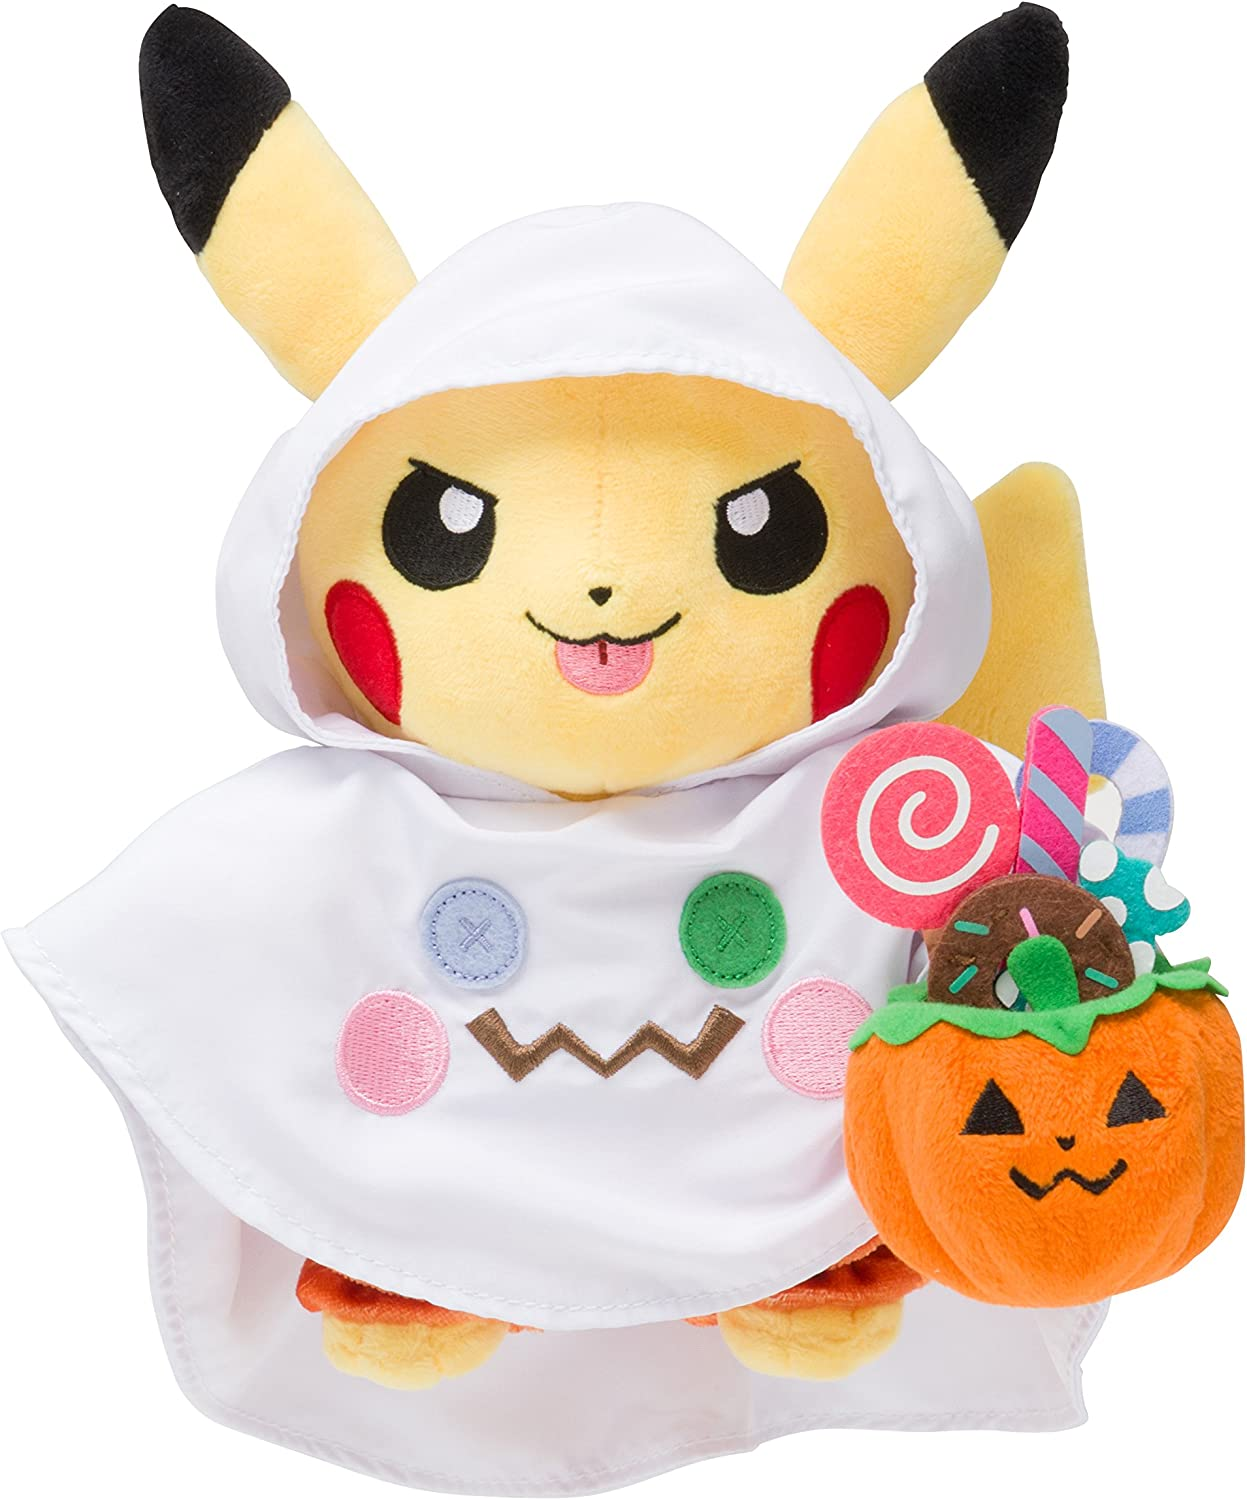 Halloween Pokemon Plushes Japan 2020 Amazon.com: Pokemon Center 8.6 Inch Pikachu Pokemon Halloween Time